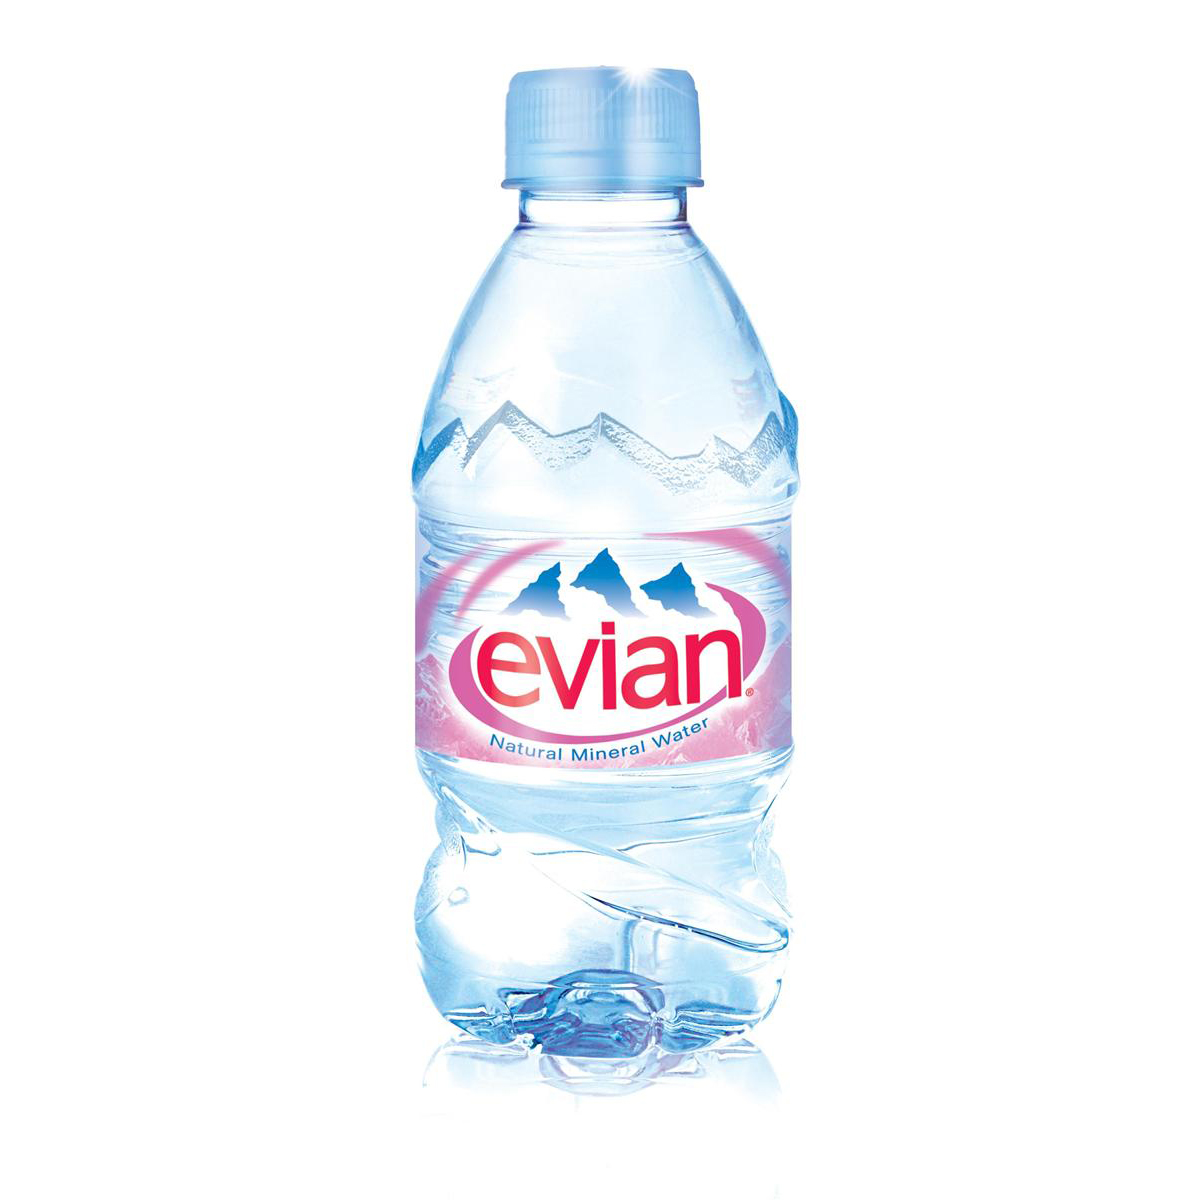 Evian Natural Mineral Water Still Bottle Plastic 330ml Ref 01310 Pack 24